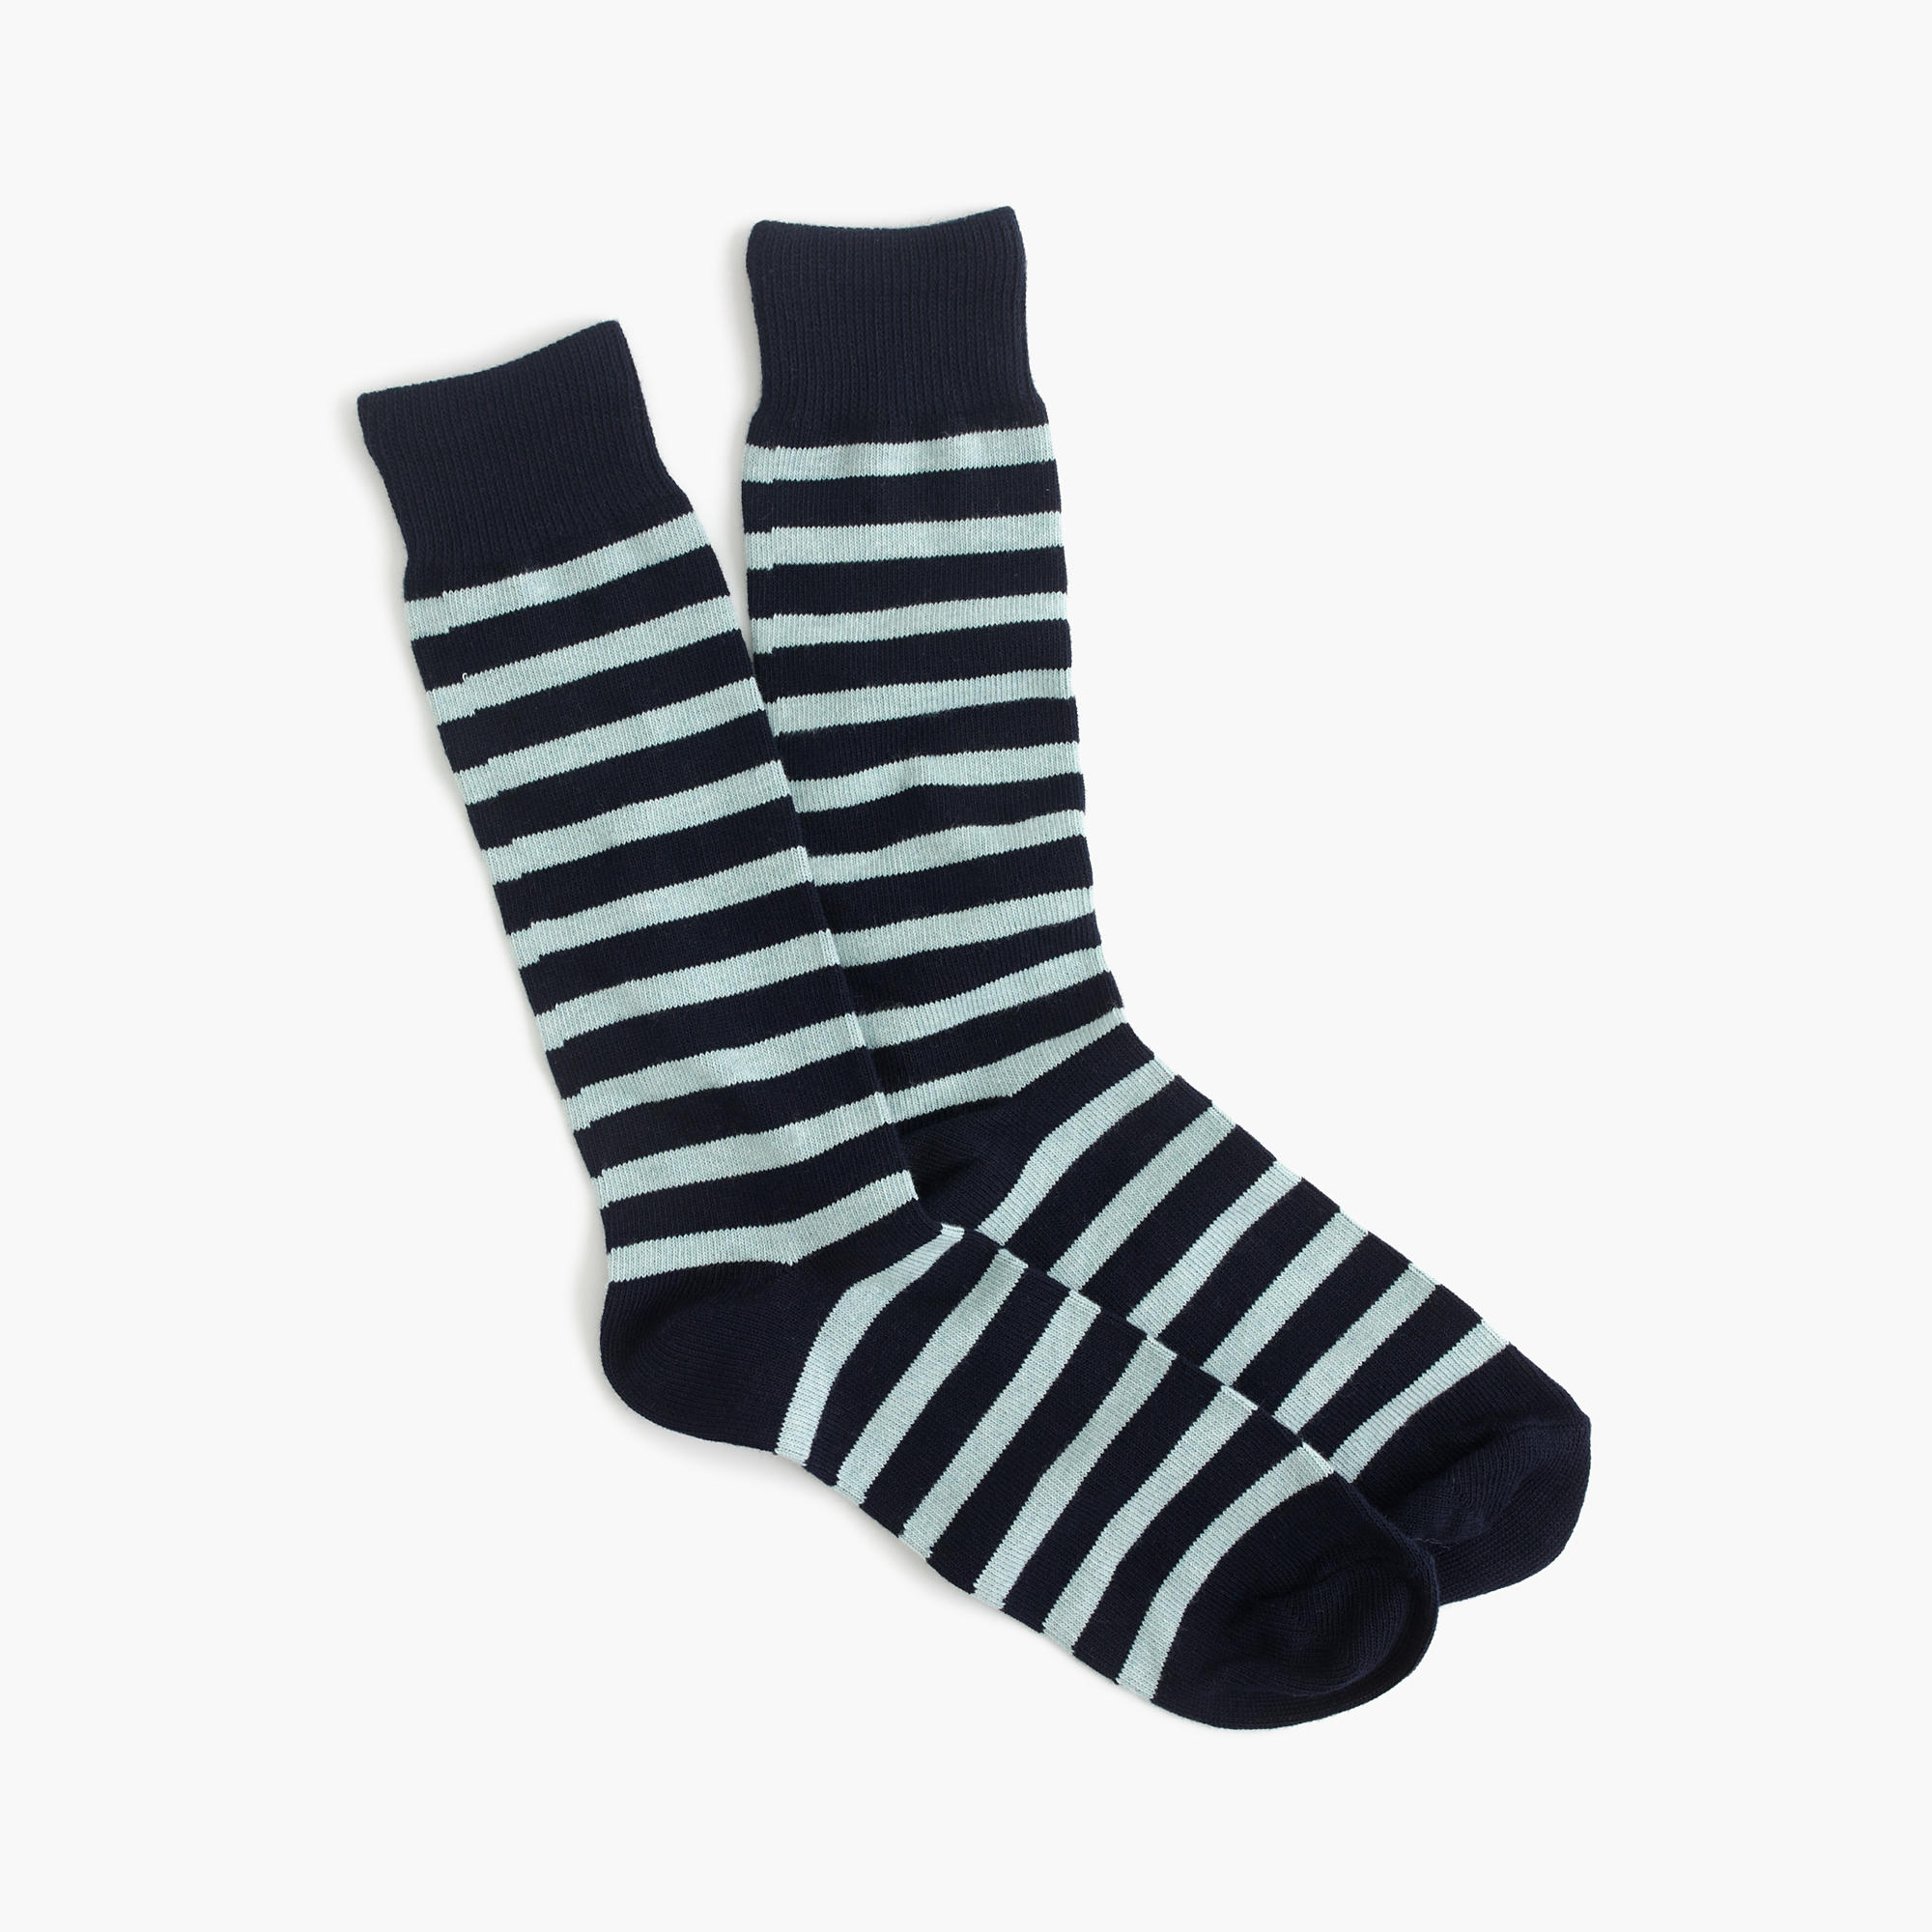 Men's striped socks available in multitudes of colors and stripe thicknesses that pack a bold, legendary punch. Shop now for stylish stripes.